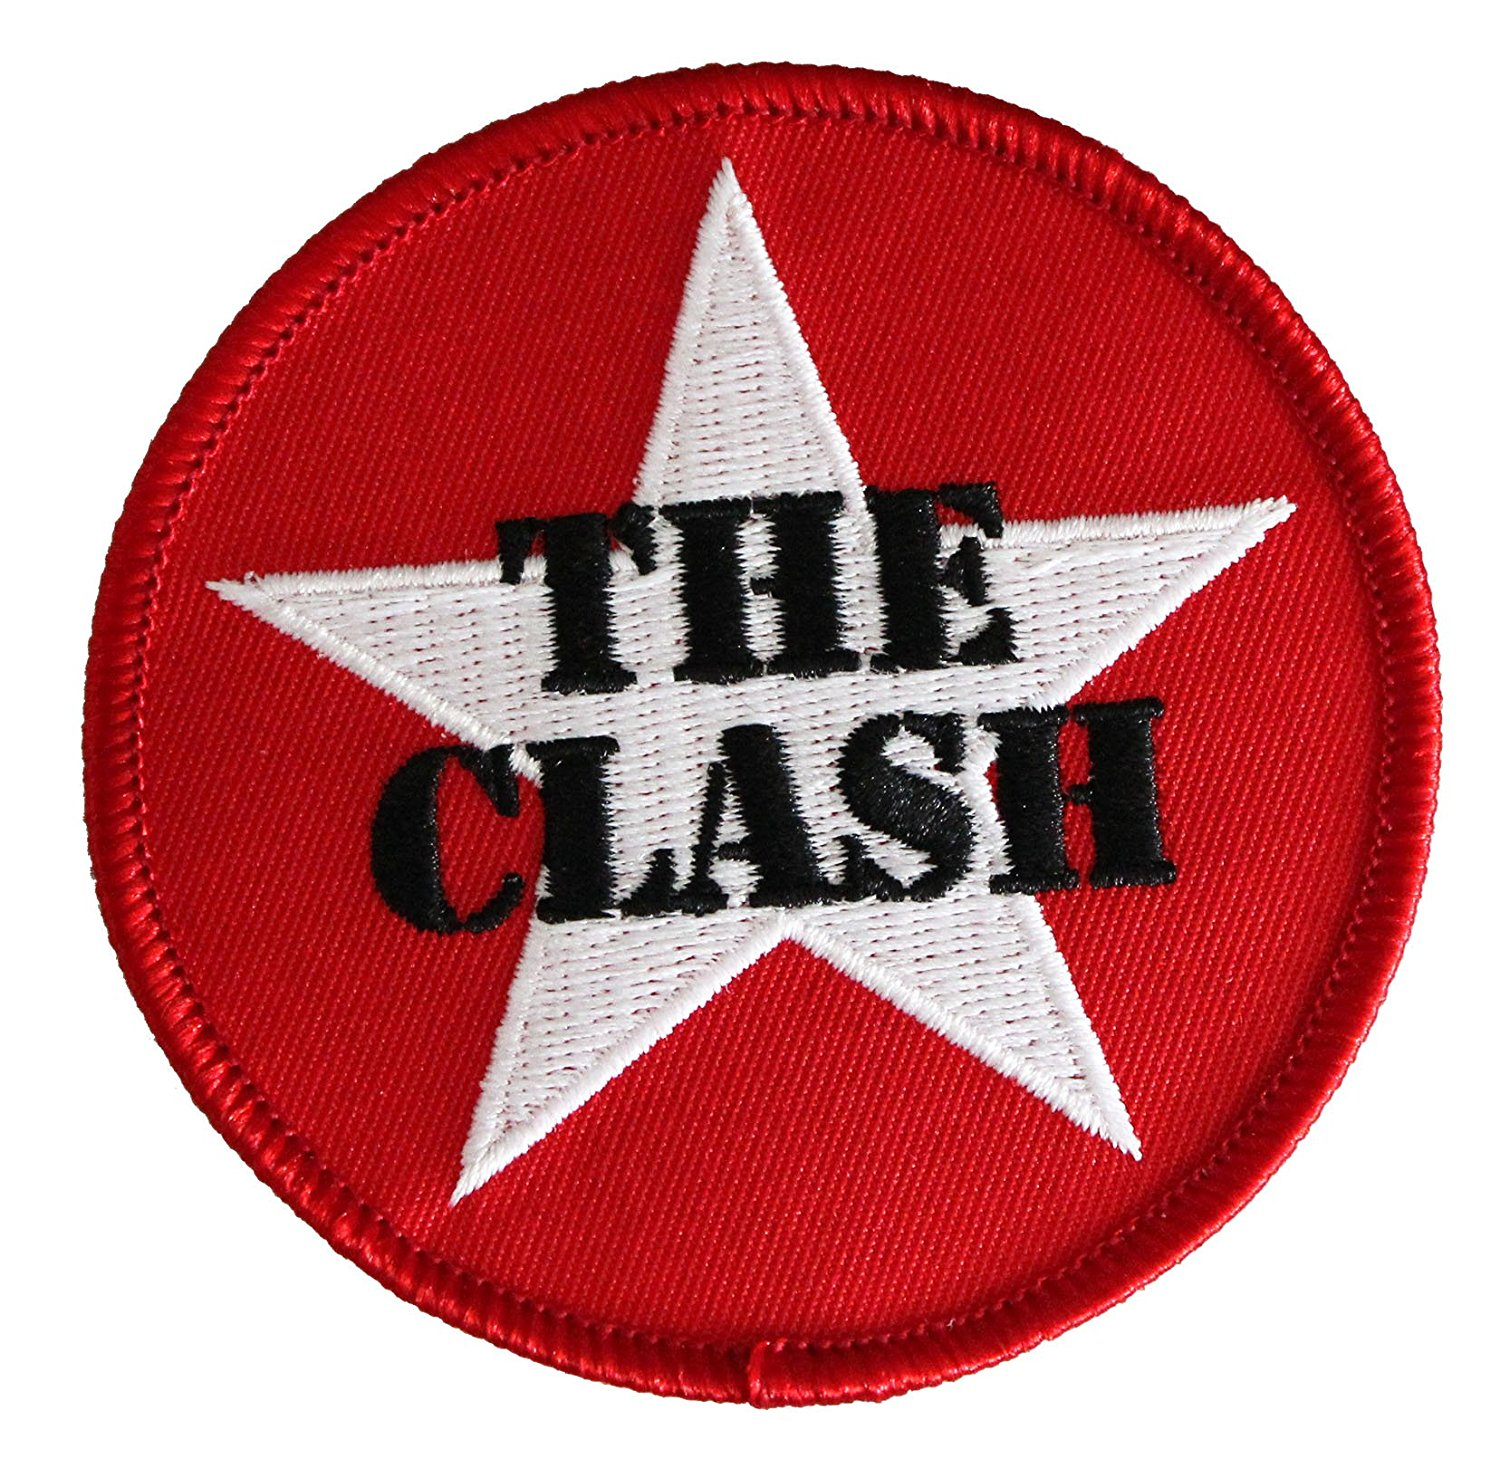 The CLASH STAR LOGO, Officially Licensed Original Artwork, High Quality Iron-On / Sew-On, 3' x 3' Embroidered Patch